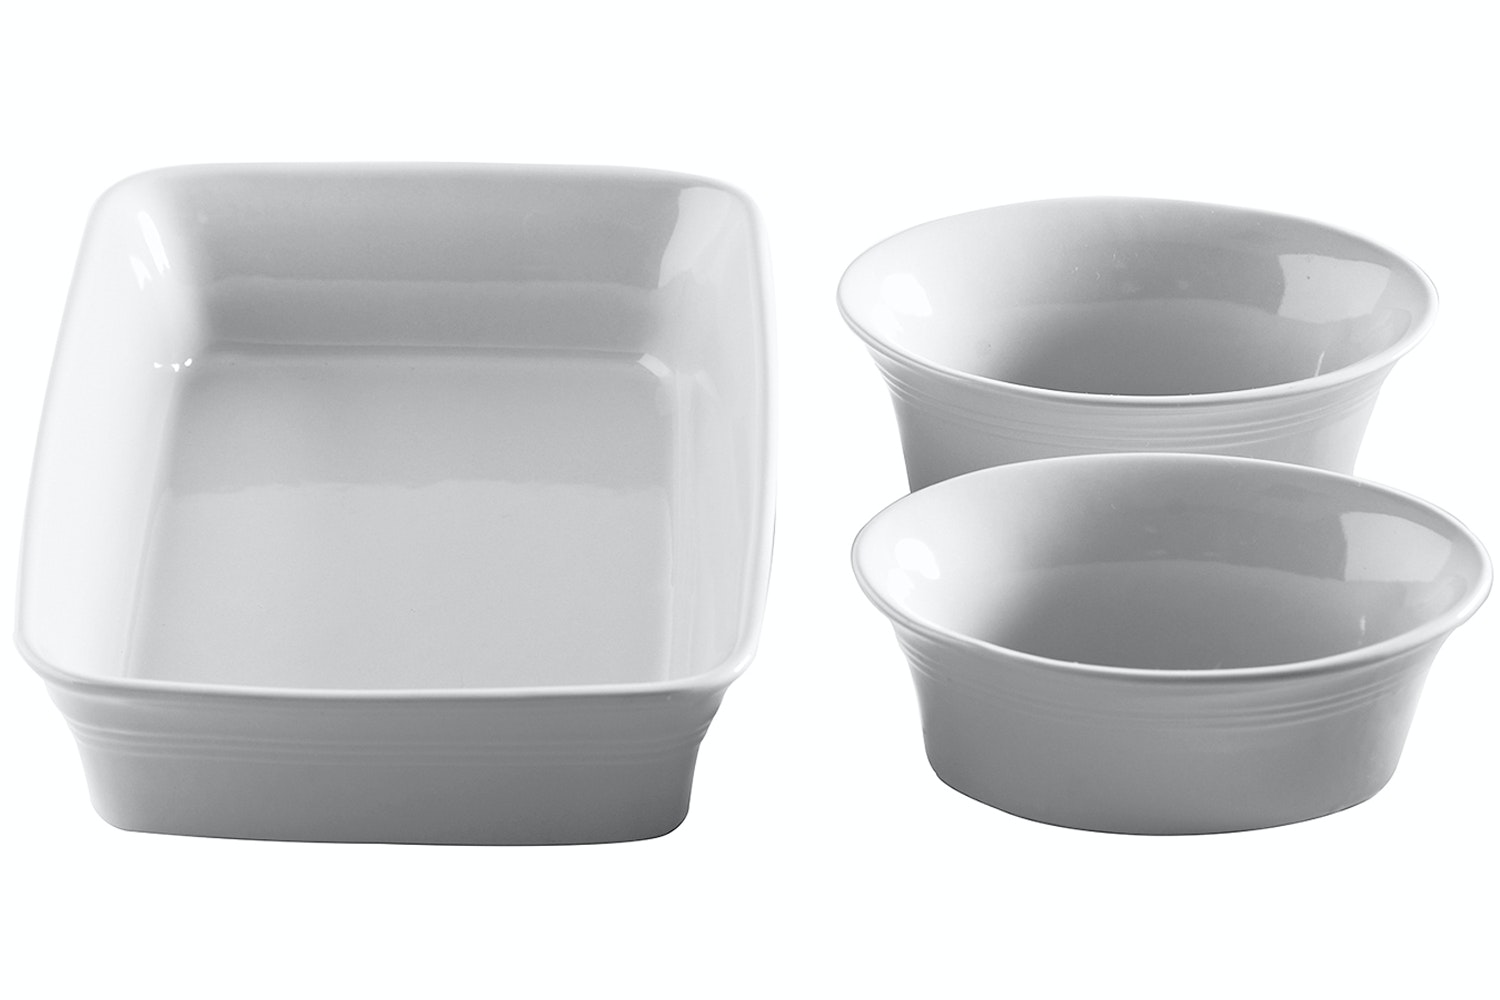 Kitchen Cream Ovenware Set|3 Piece Set